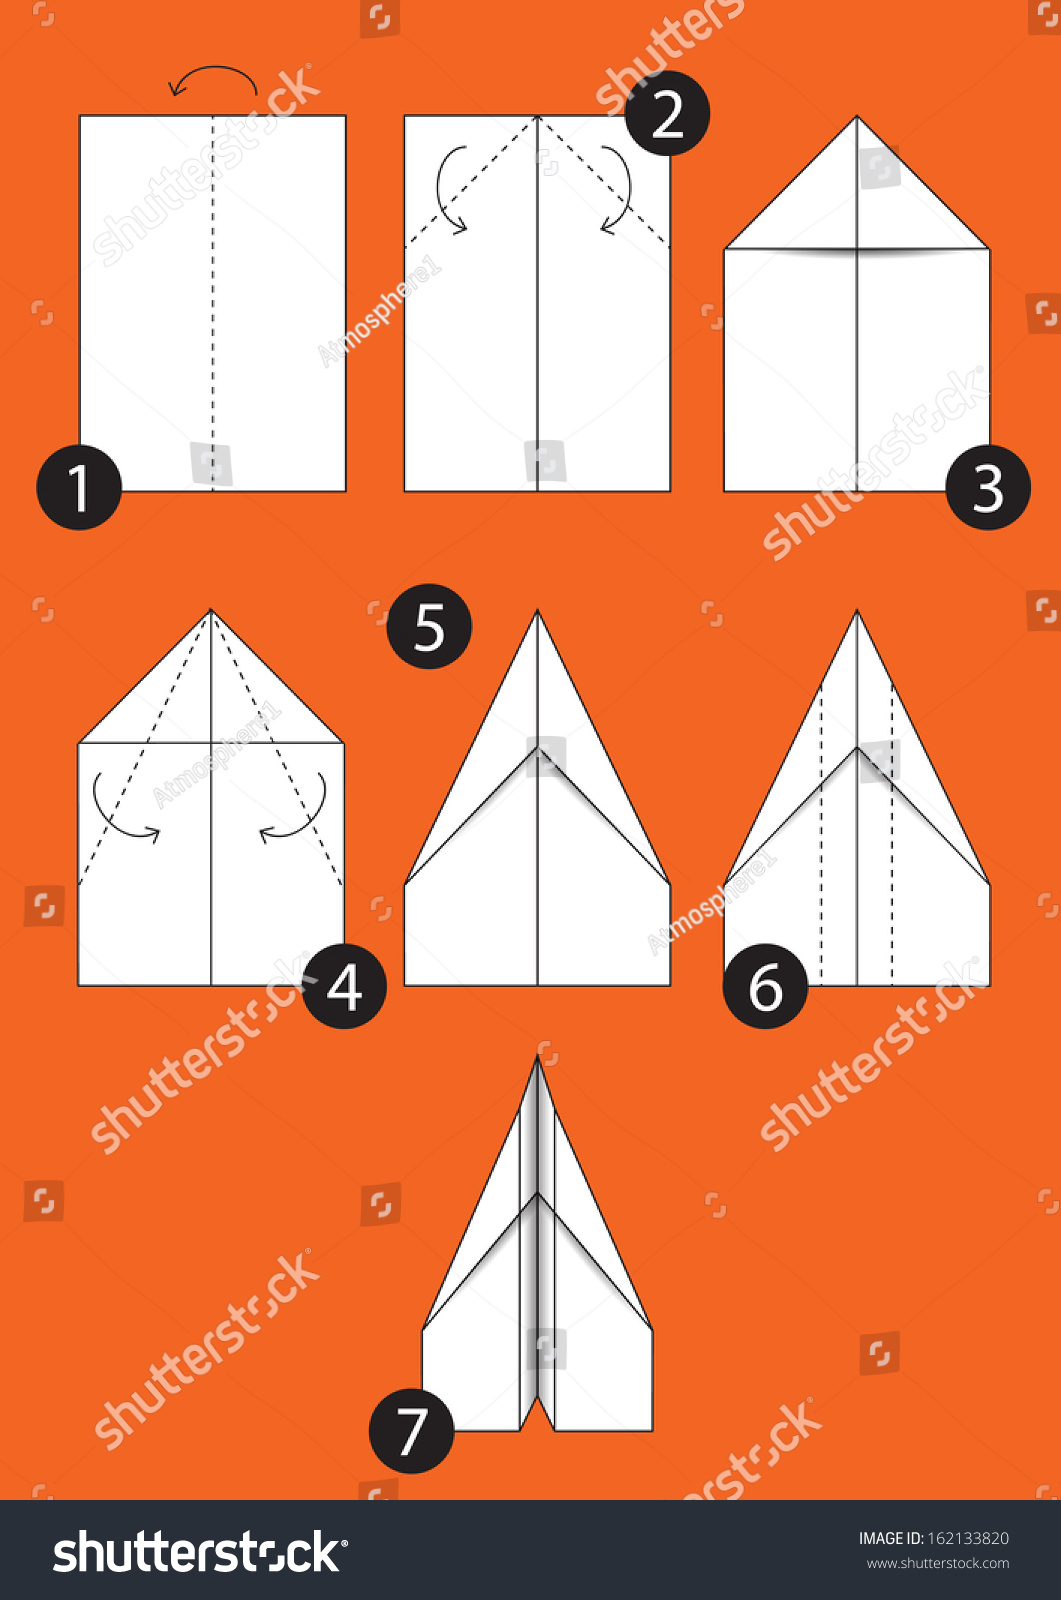 Simple Origami Cup Instructions